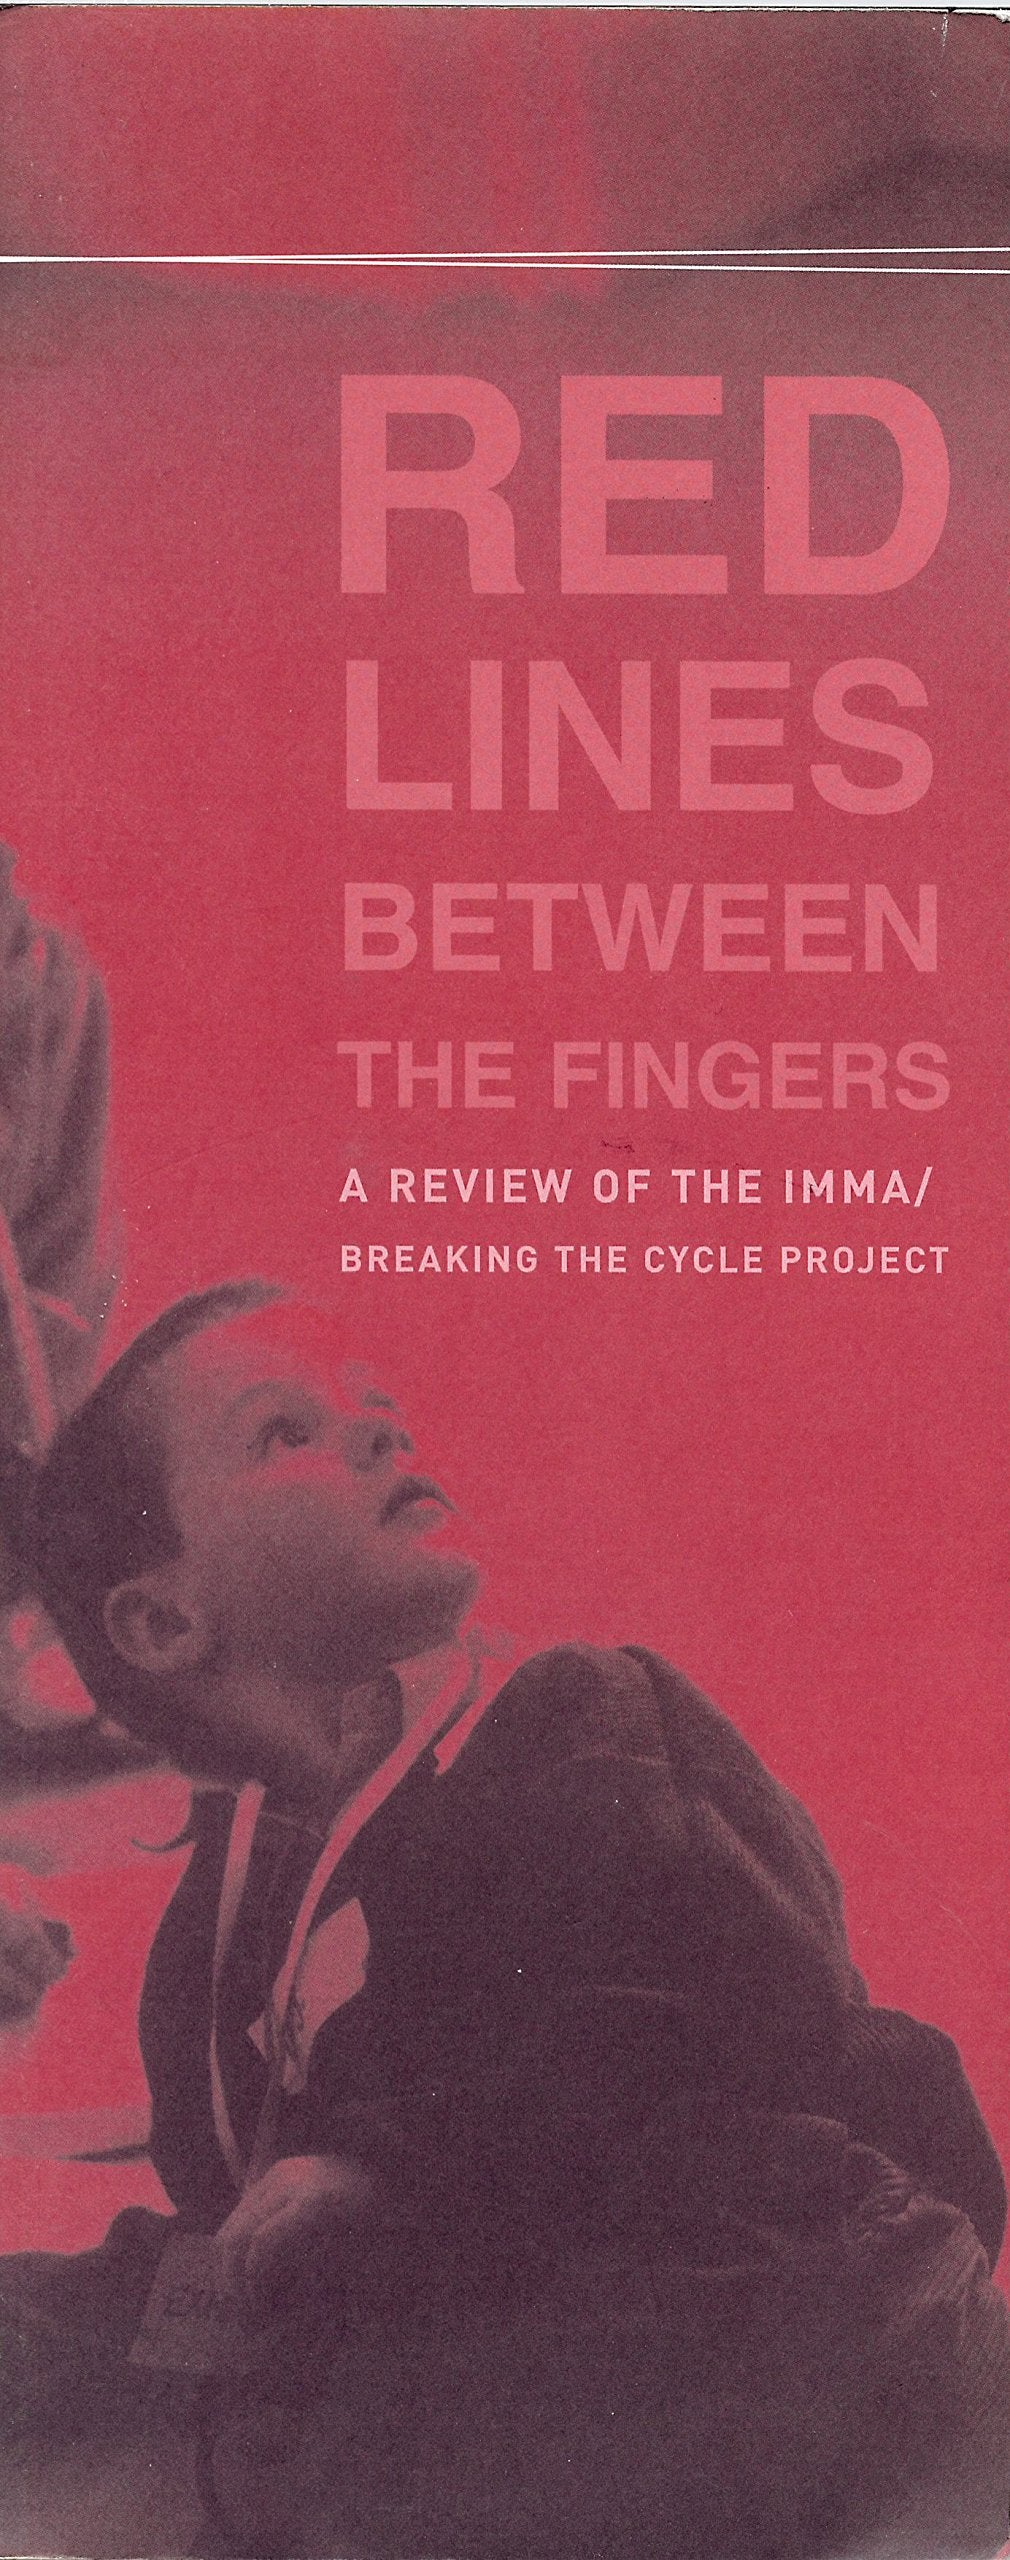 Red Lines Between the Fingers: A Review of the IMMA/Breaking the Cycle Project